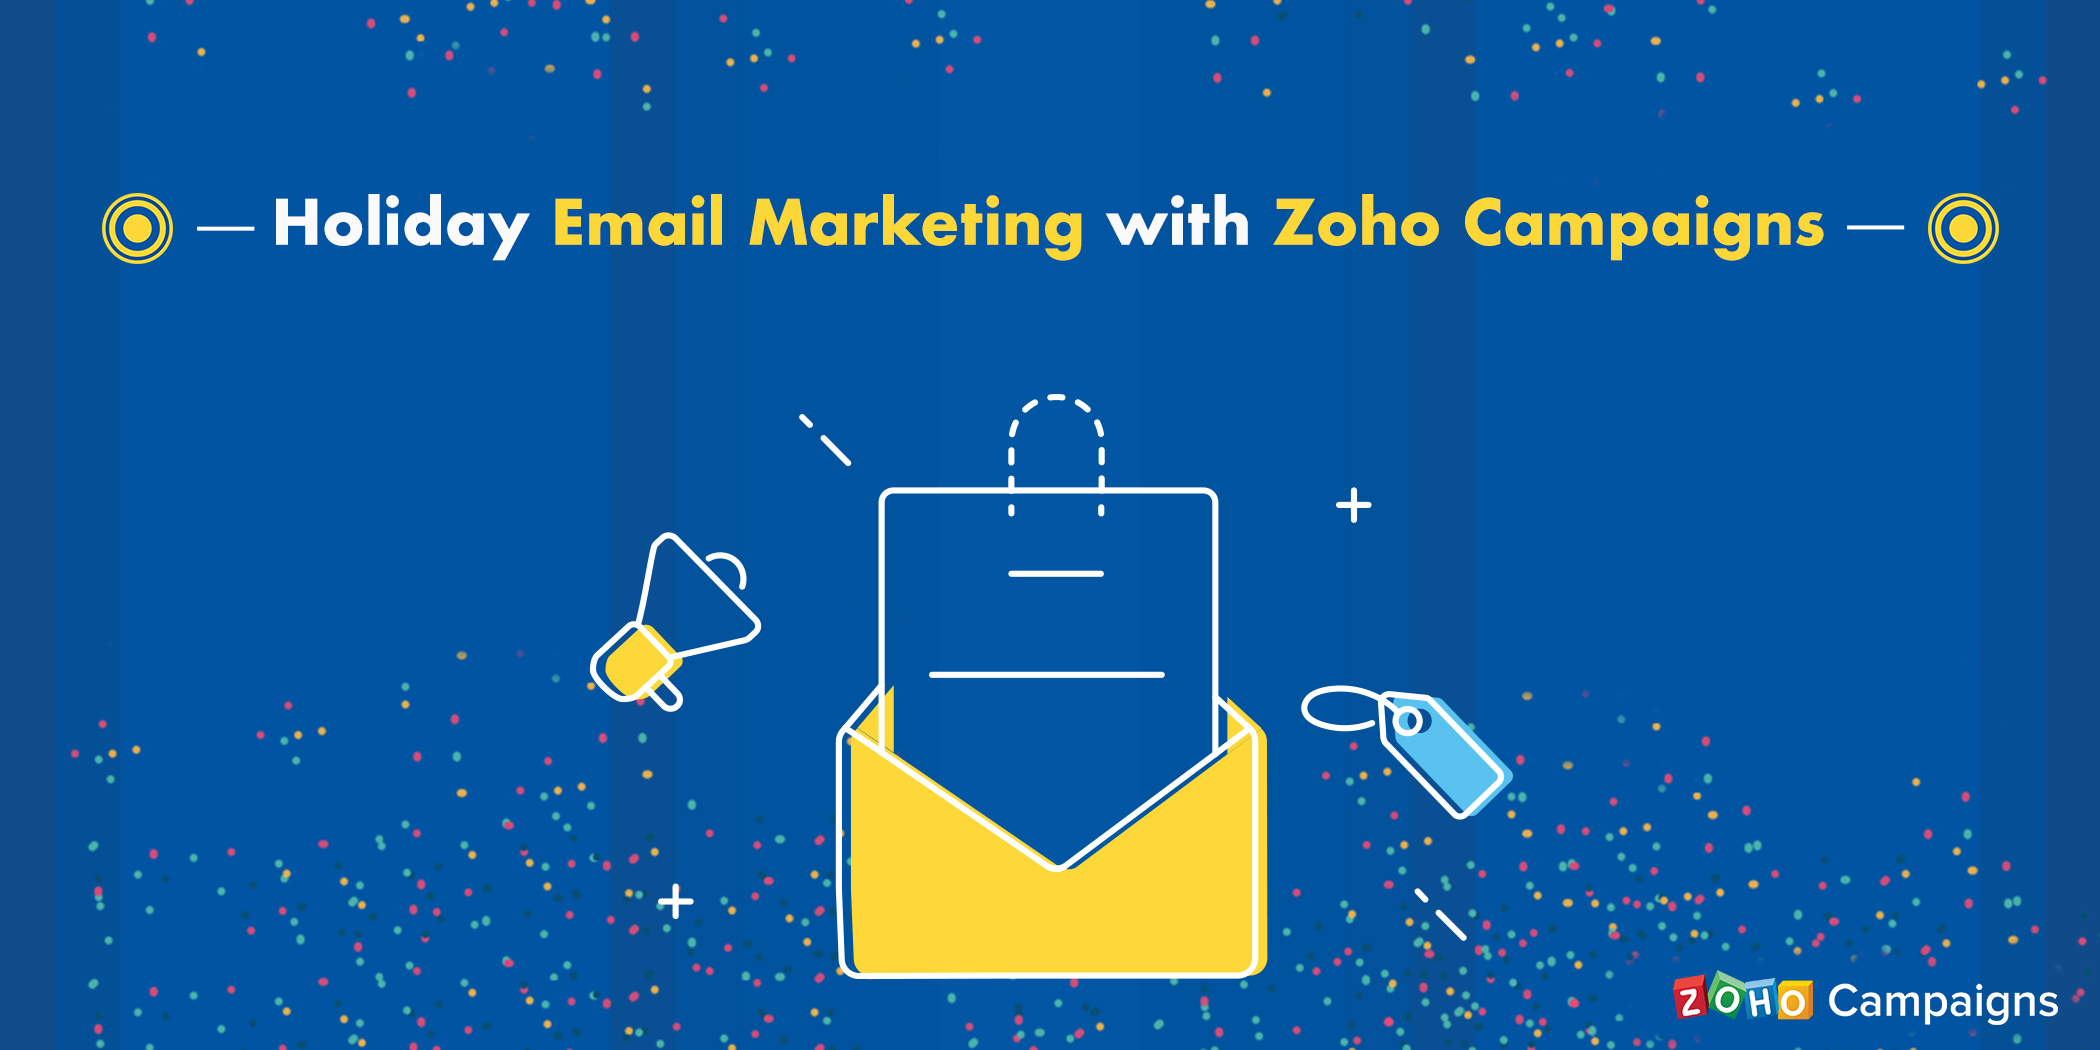 Holiday email marketing with Zoho Campaigns